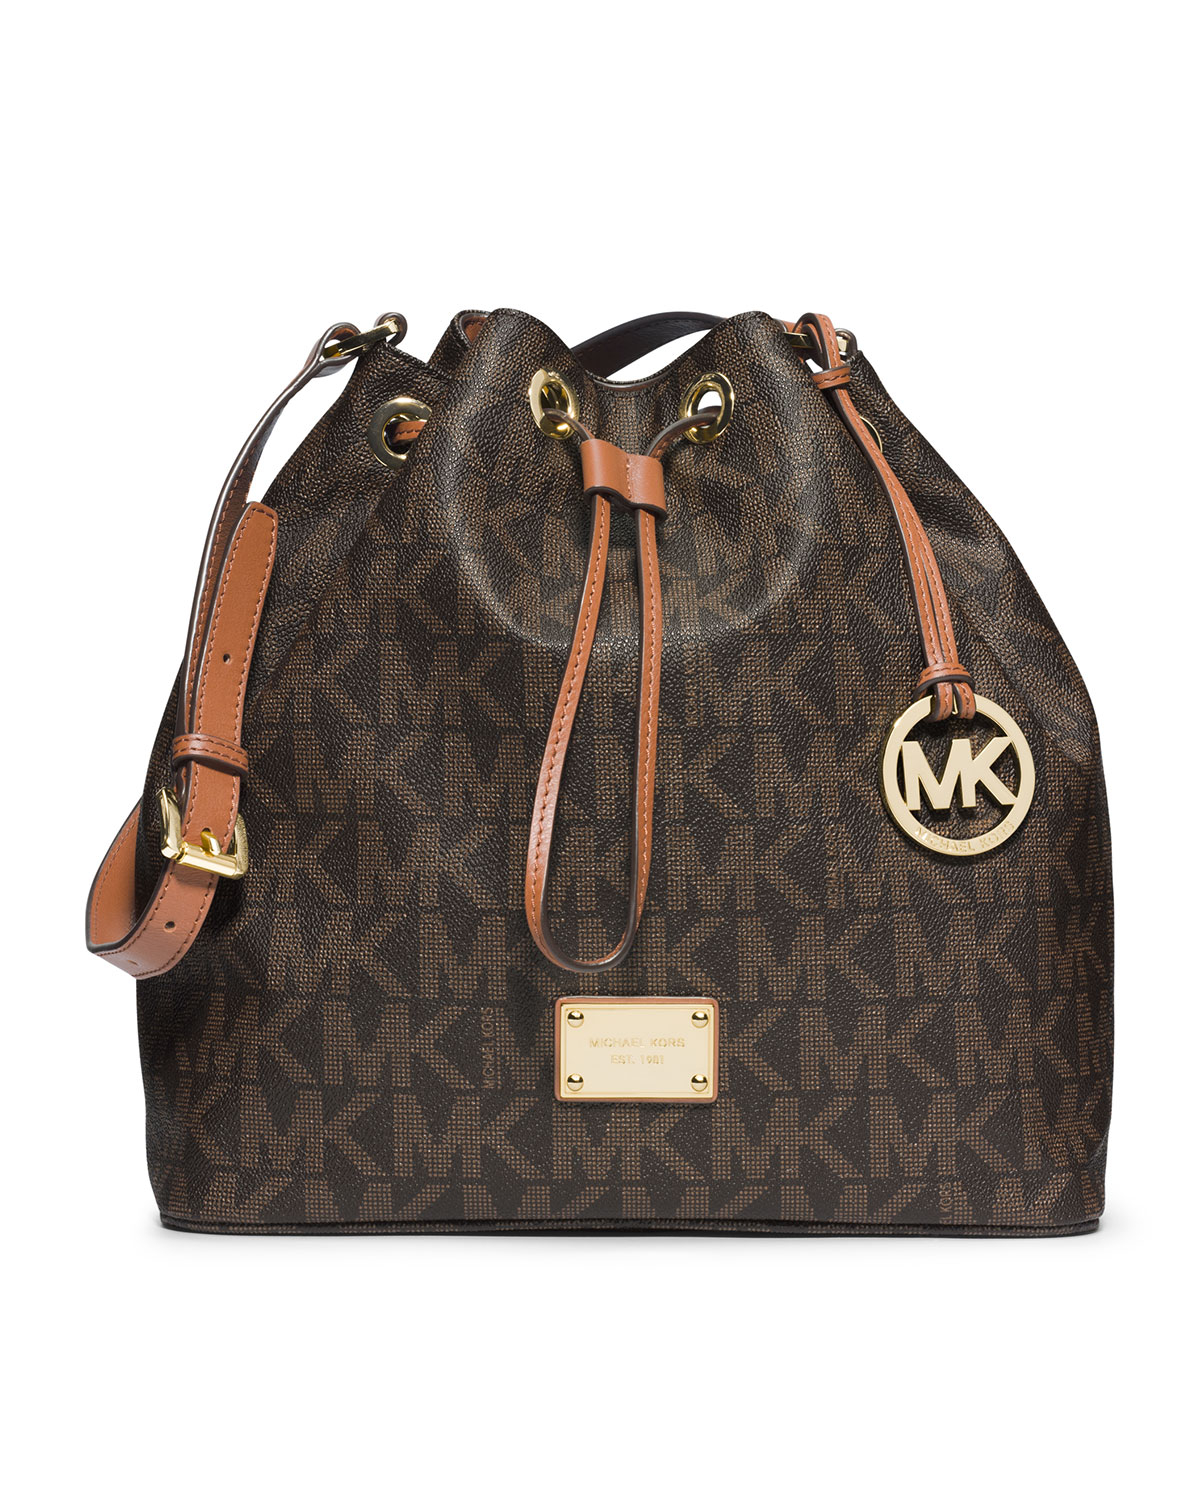 69f3c520220d Gallery. Previously sold at: Neiman Marcus · Women's Michael By Michael  Kors Jules ...